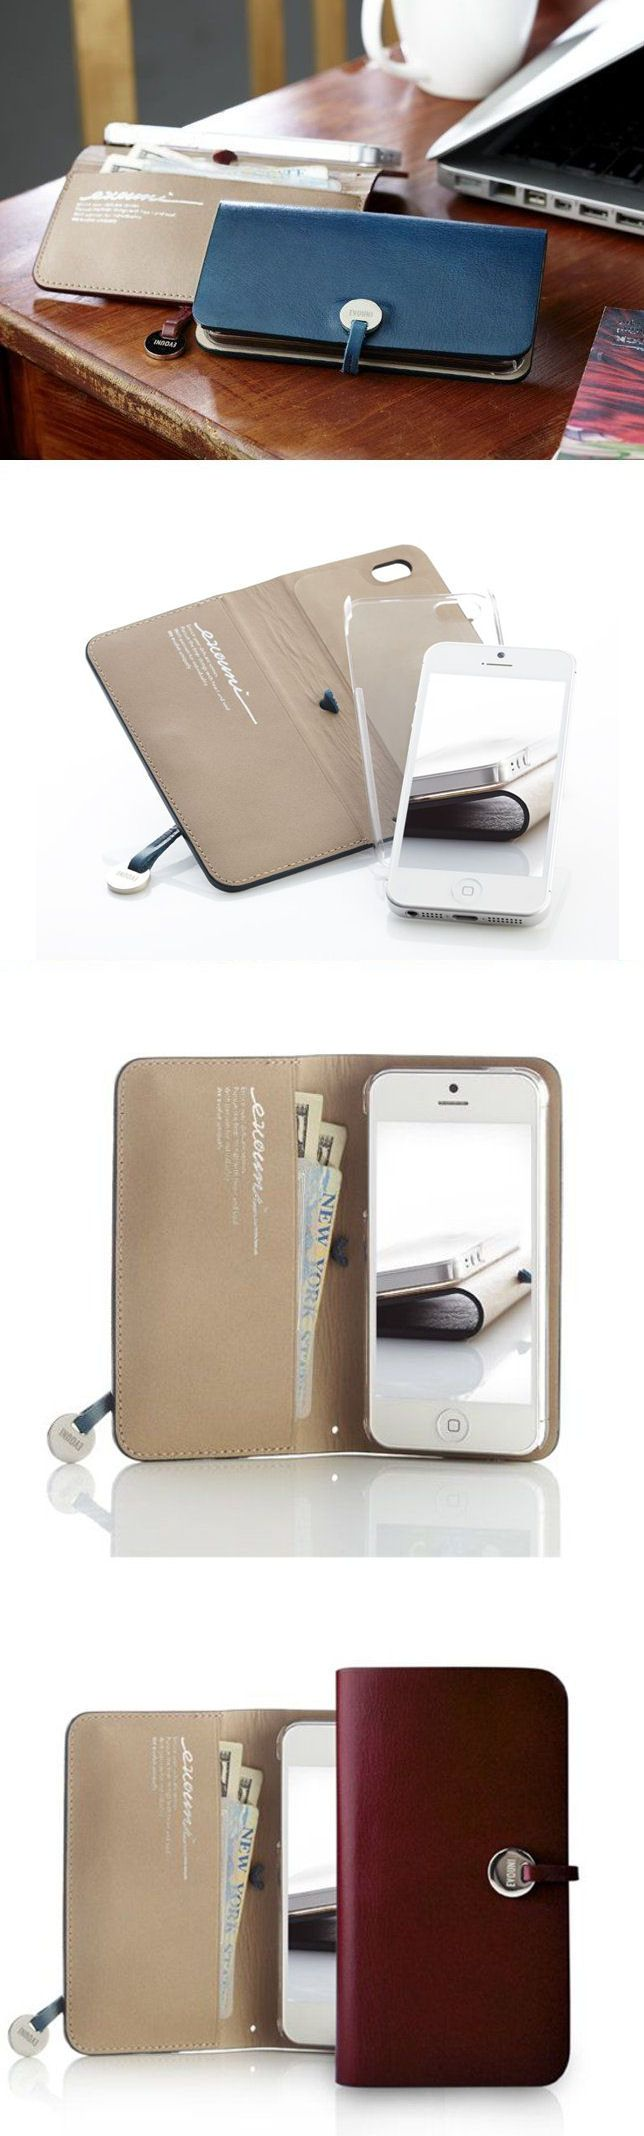 iPhone 5 Leather Wallet <3